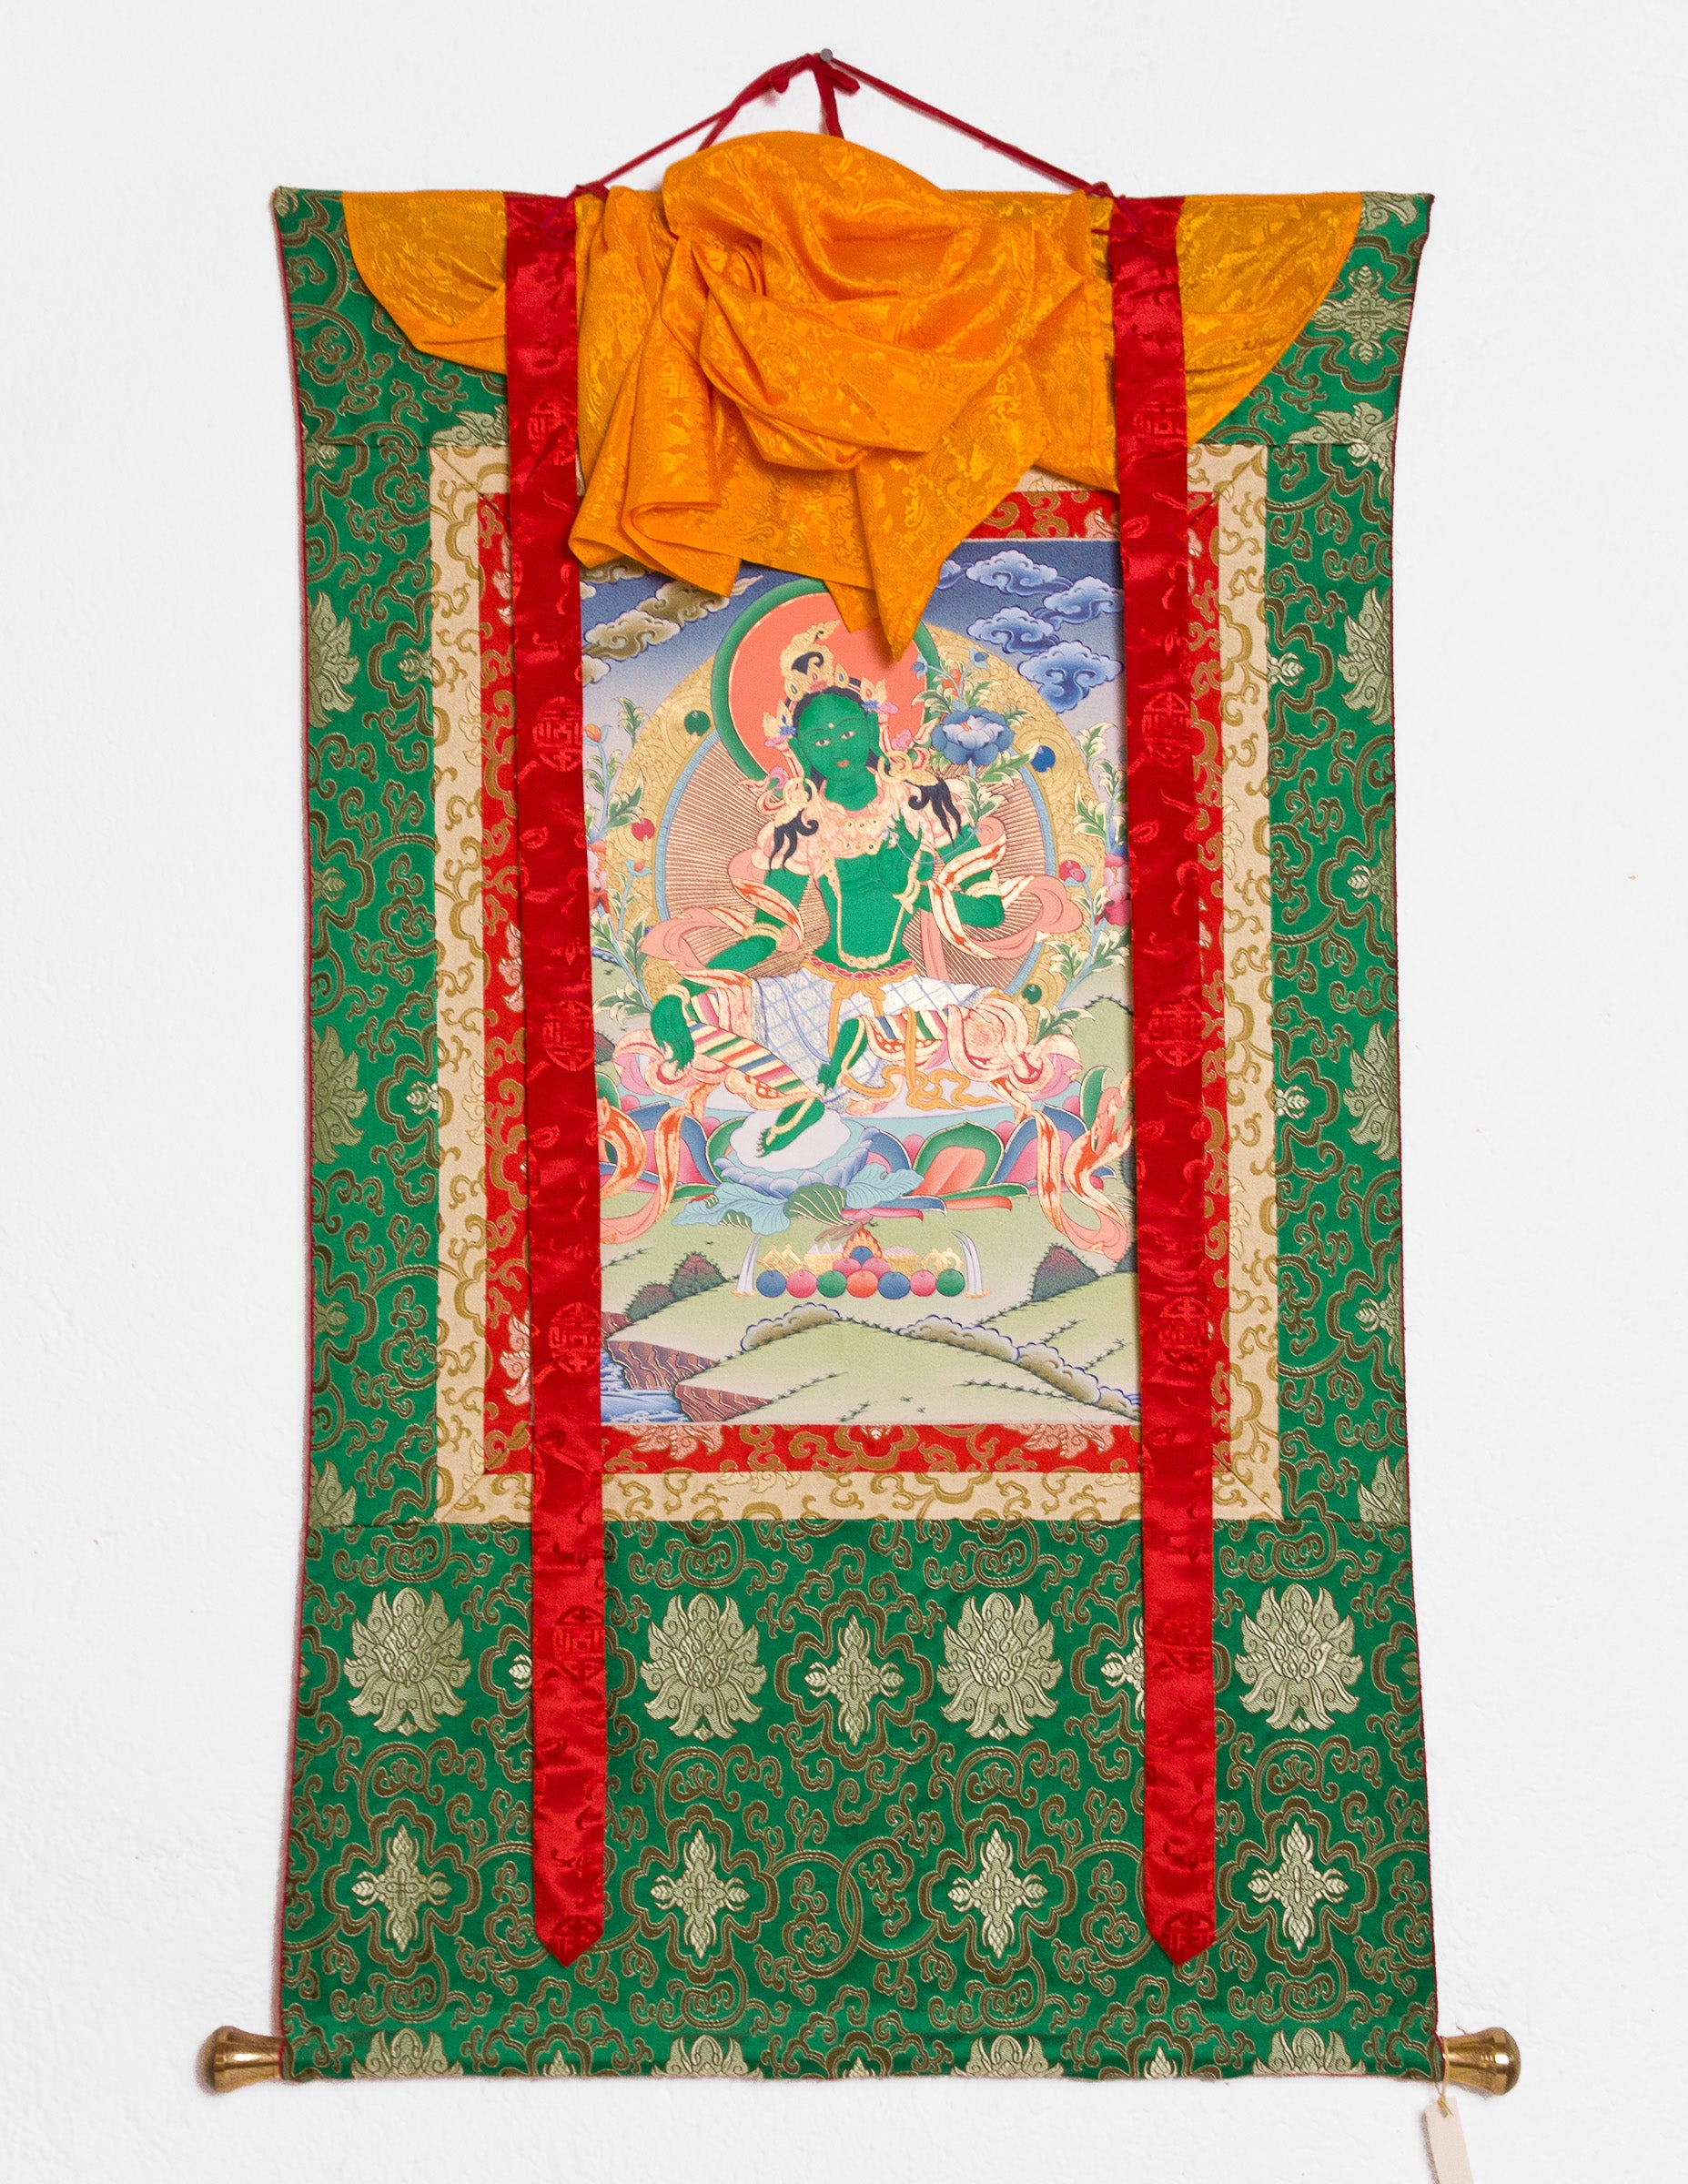 Green Tara Thangka I